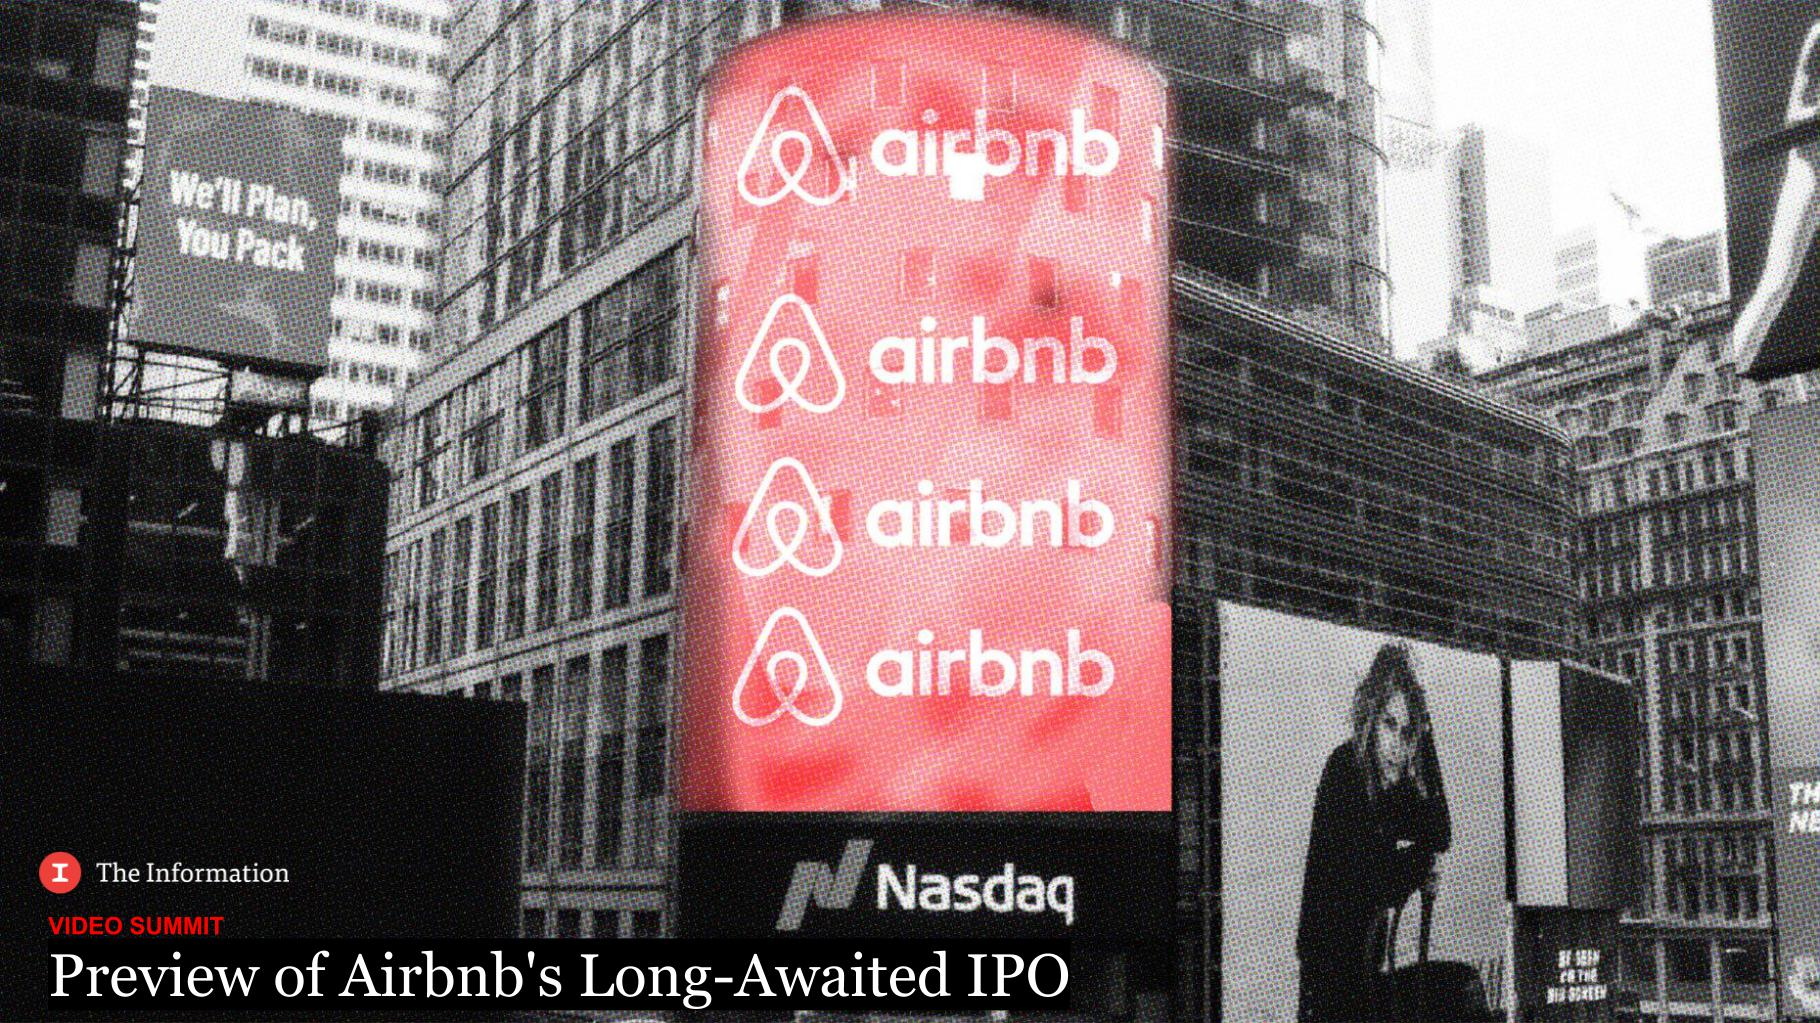 Preview of Airbnb's Long-Awaited IPO